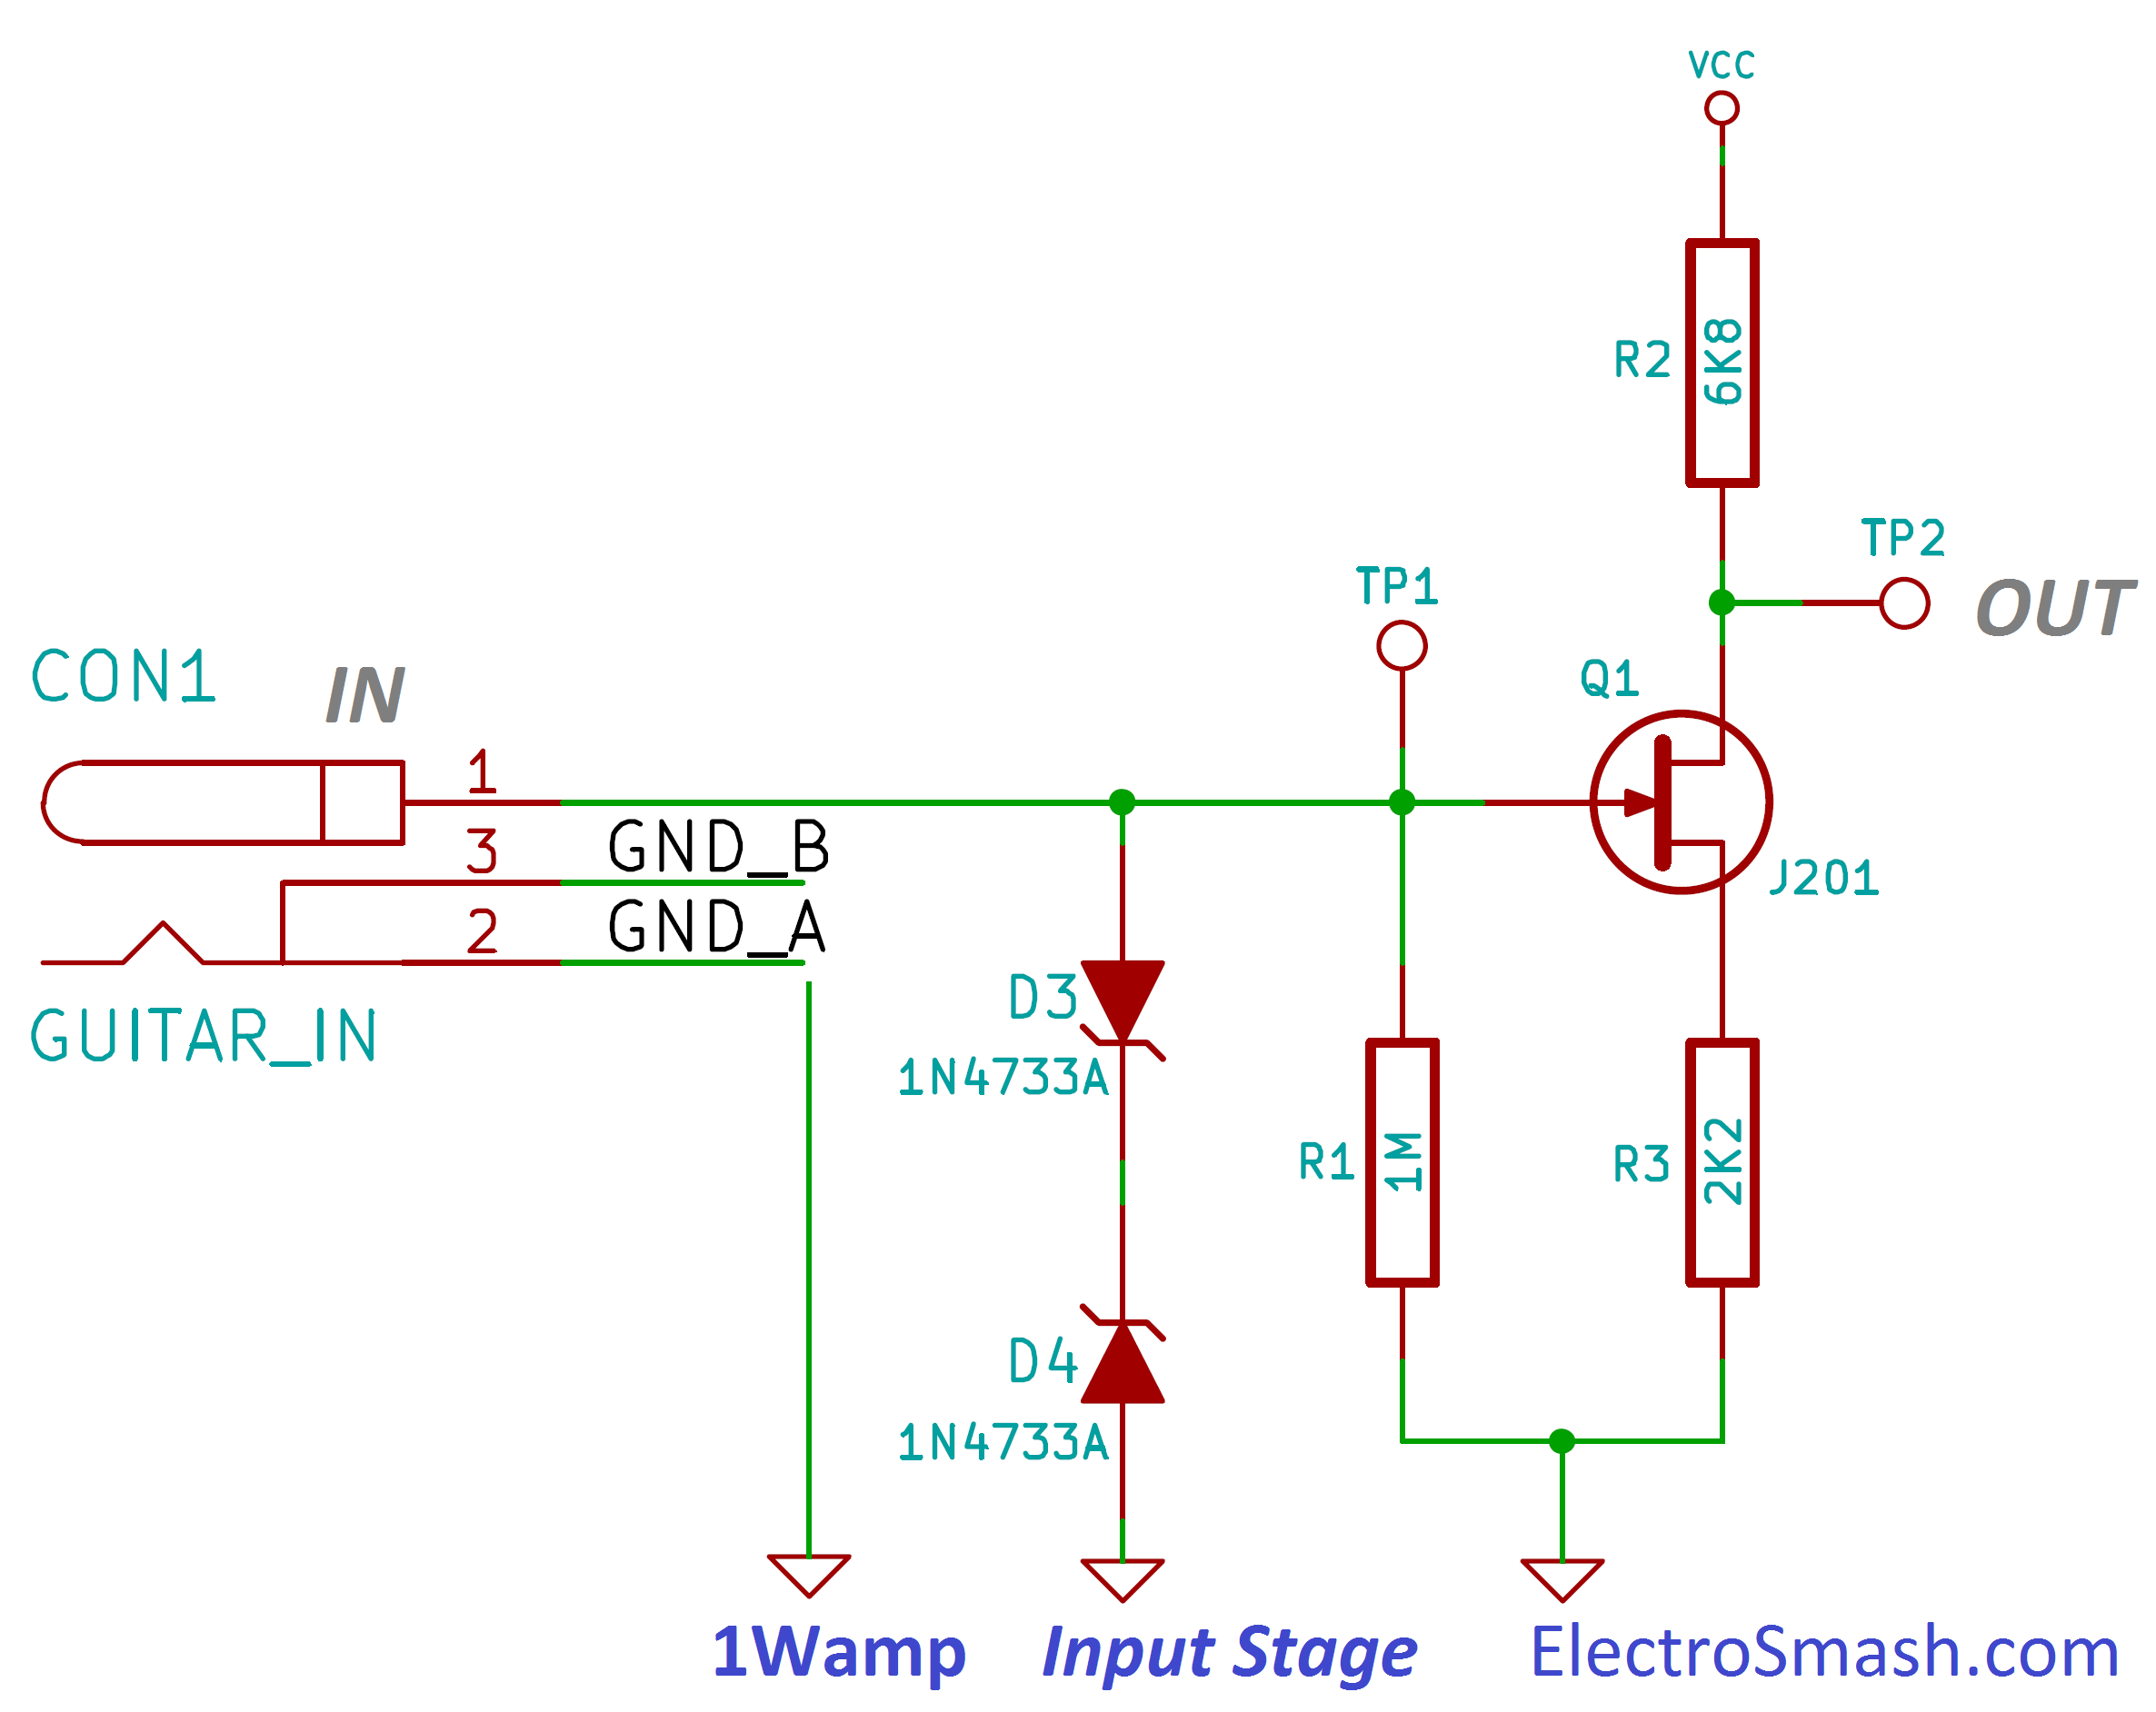 Electrosmash 1wamp Electroc Guitar Amplifier Ideas Circuit Of Small Transistor Amplifiers Jfet Input Stage